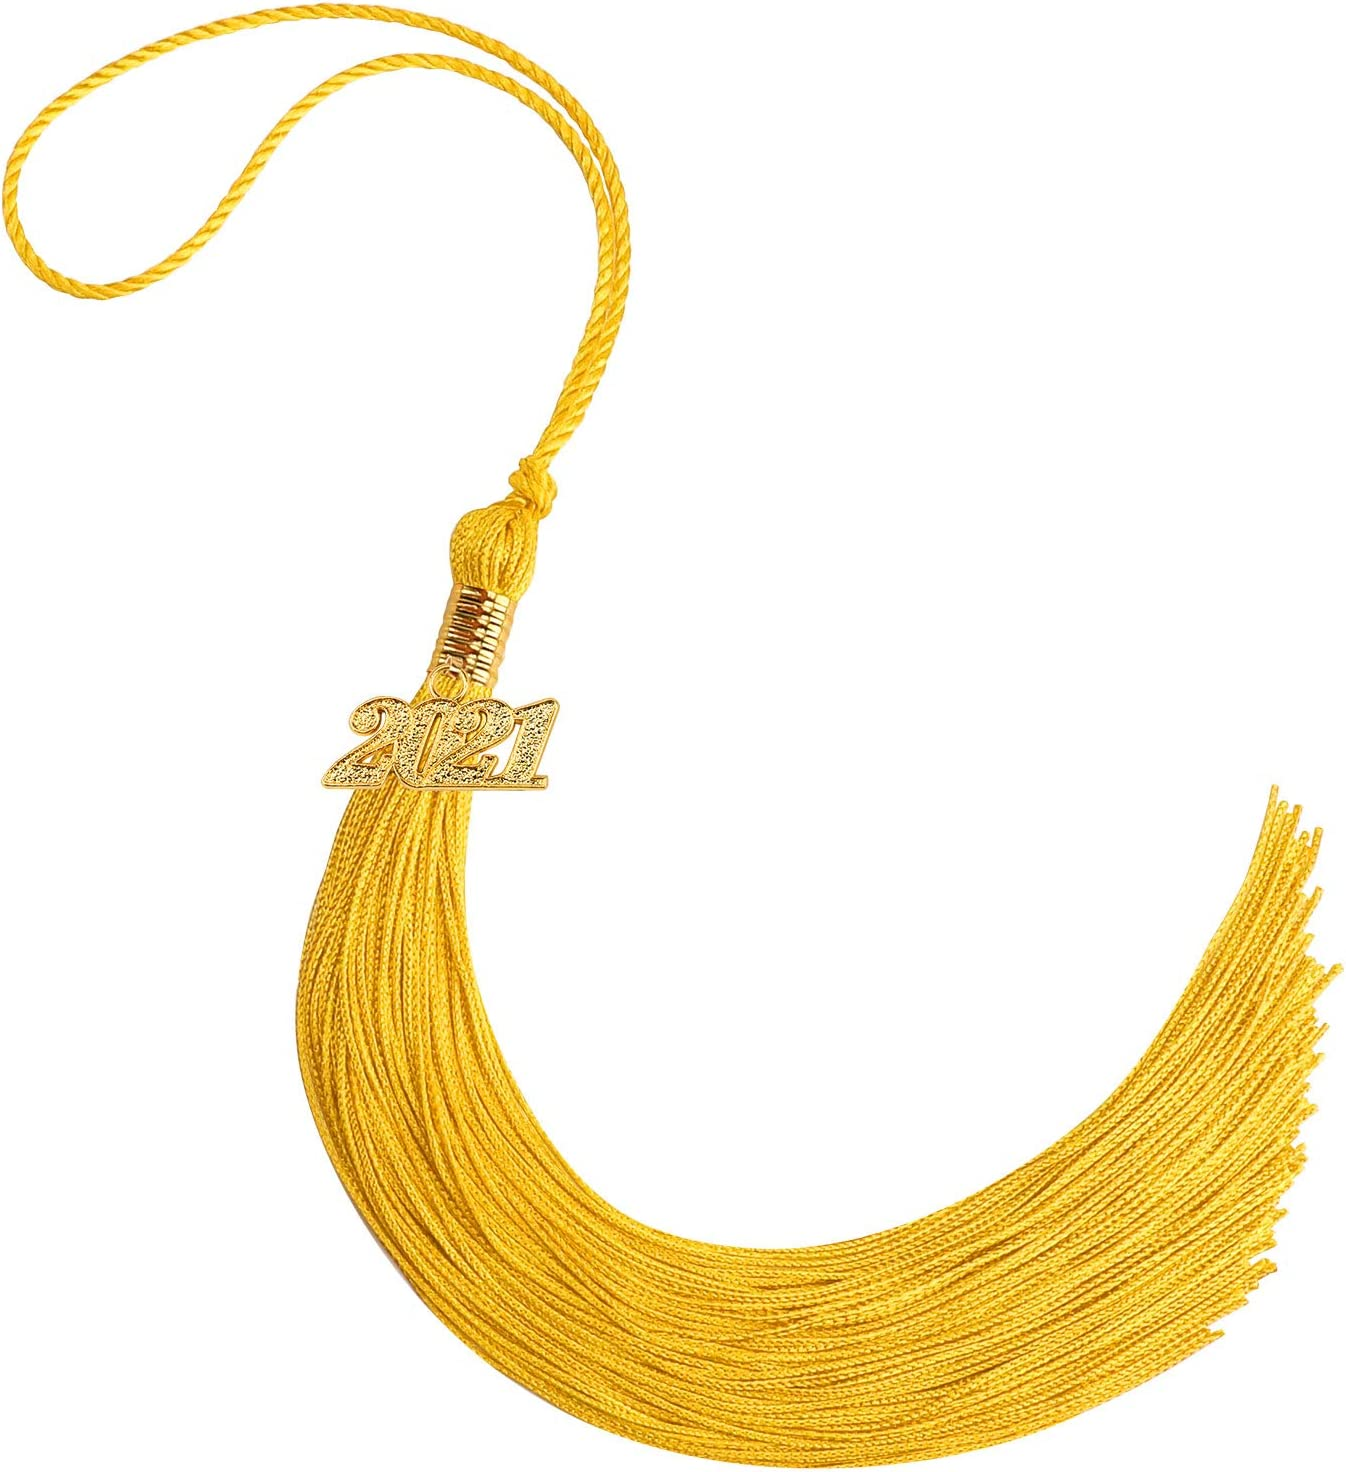 High material Graduation Tassel with service Gold 2021 Year Academic for Charm Graduat